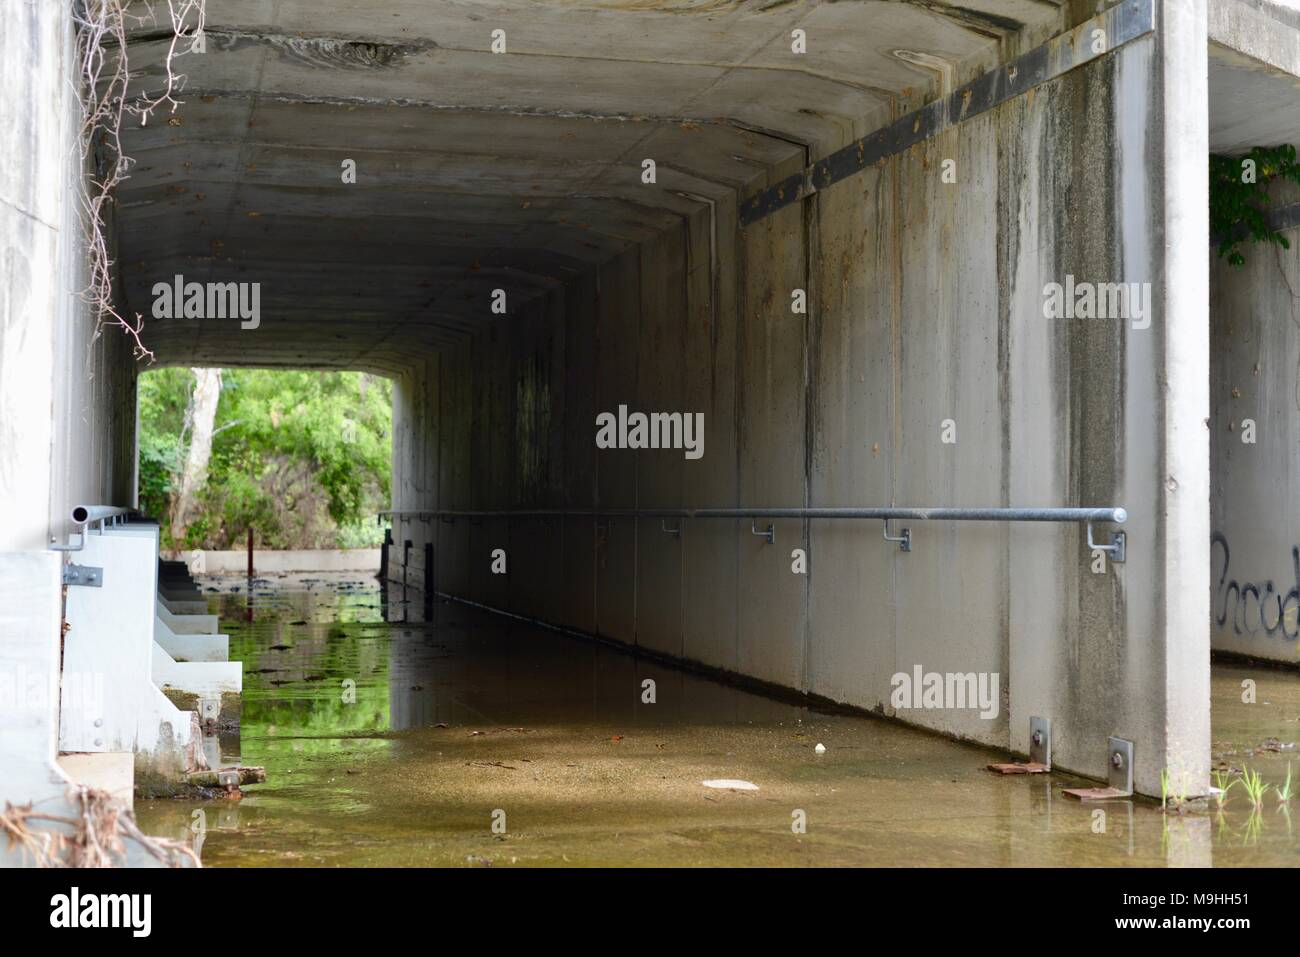 Baffles stock photos baffles stock images alamy - University of queensland swimming pool ...